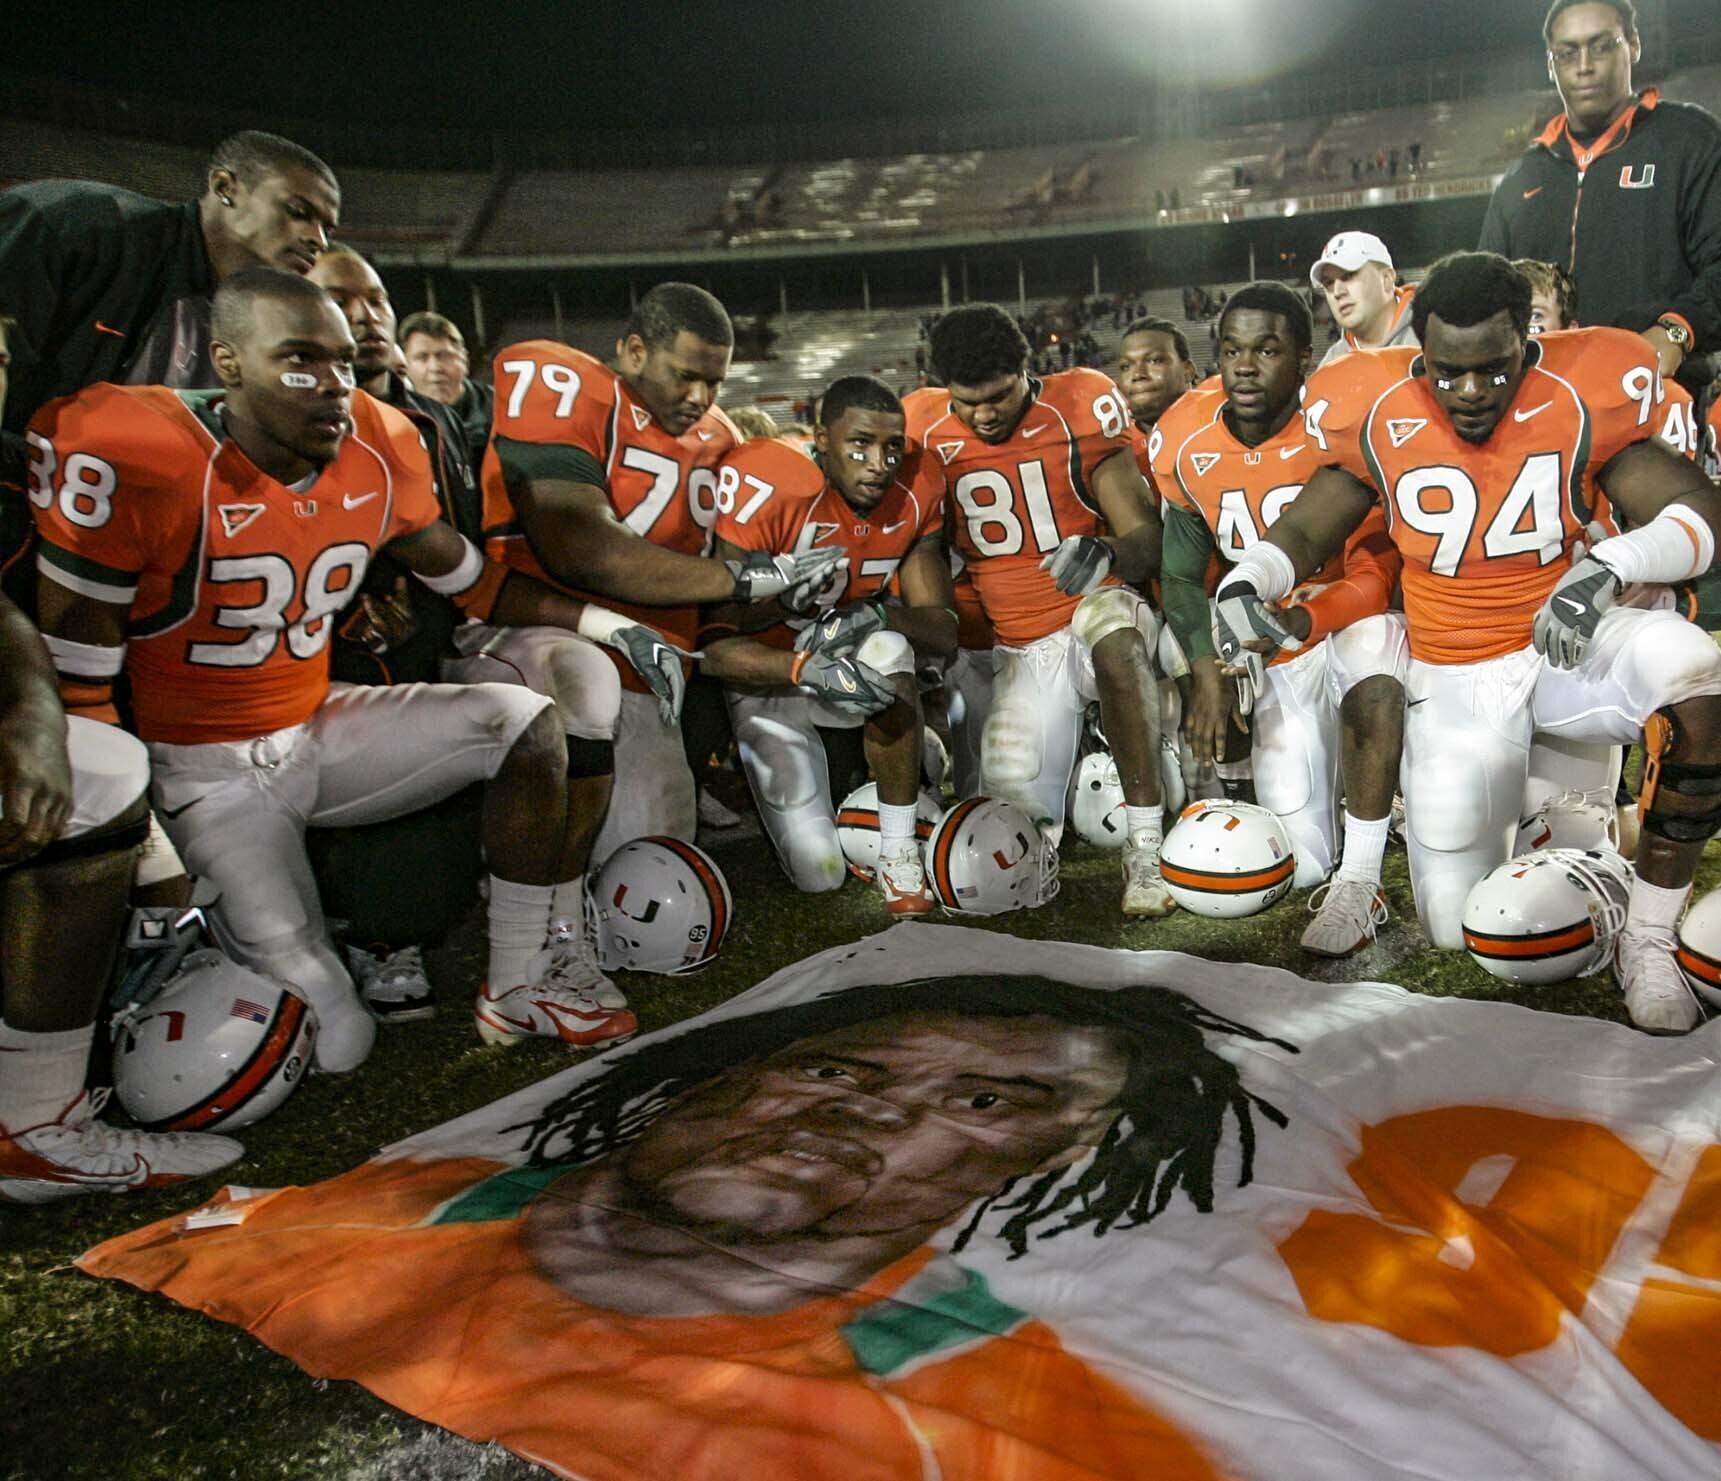 Ex-teammate pleads not guilty to killing Miami football star